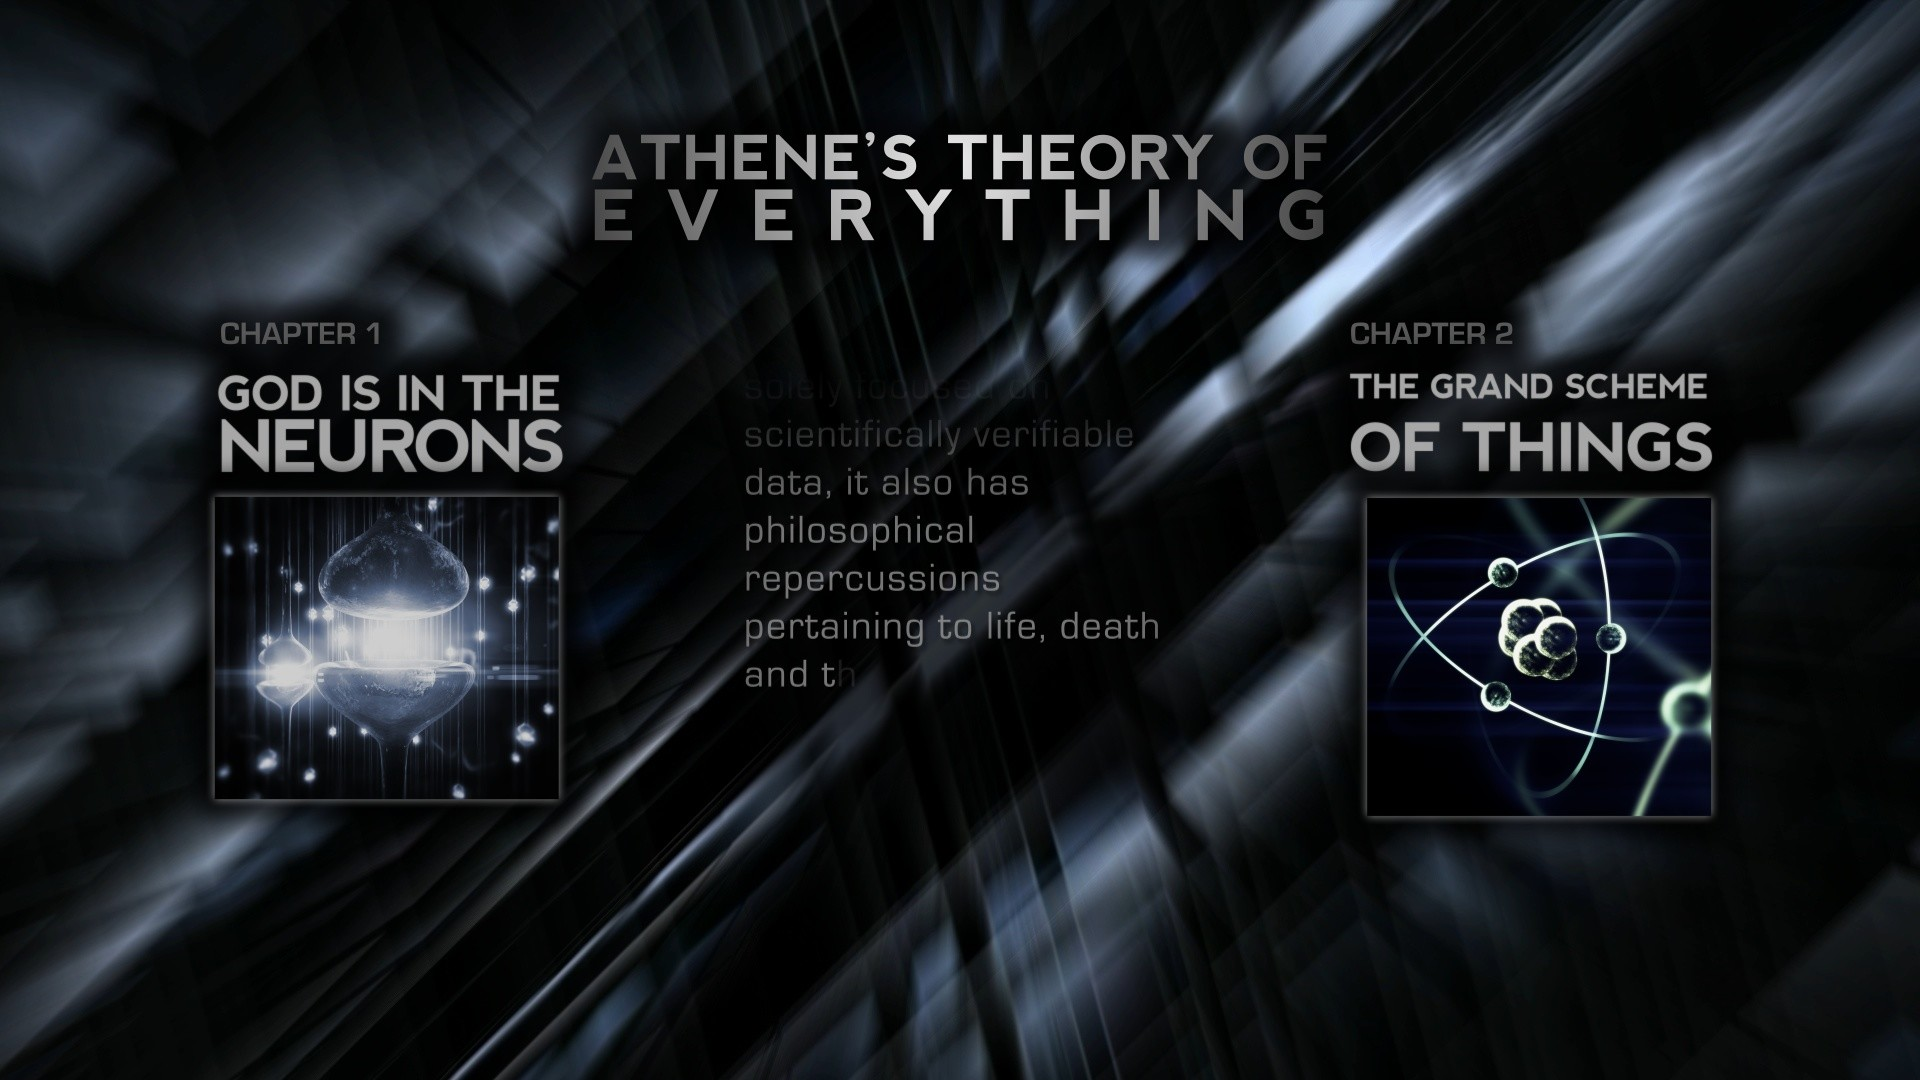 1920x1080 String Theory Equation Wallpaper Athene's theory of everything